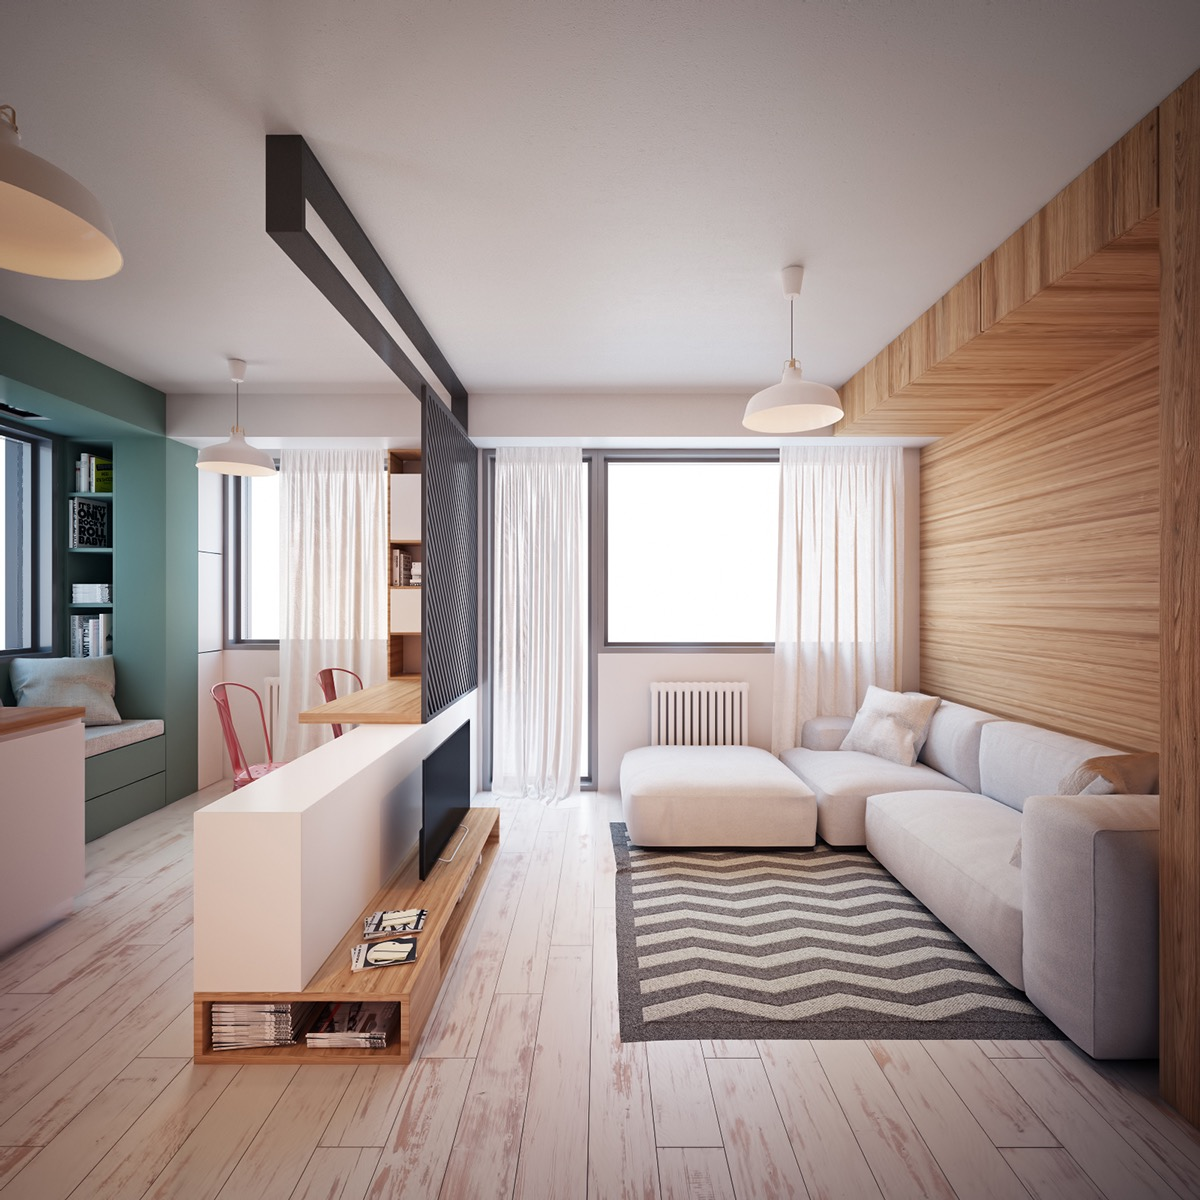 Ultra tiny home design 4 interiors under 40 square meters - Small housessquare meters ...